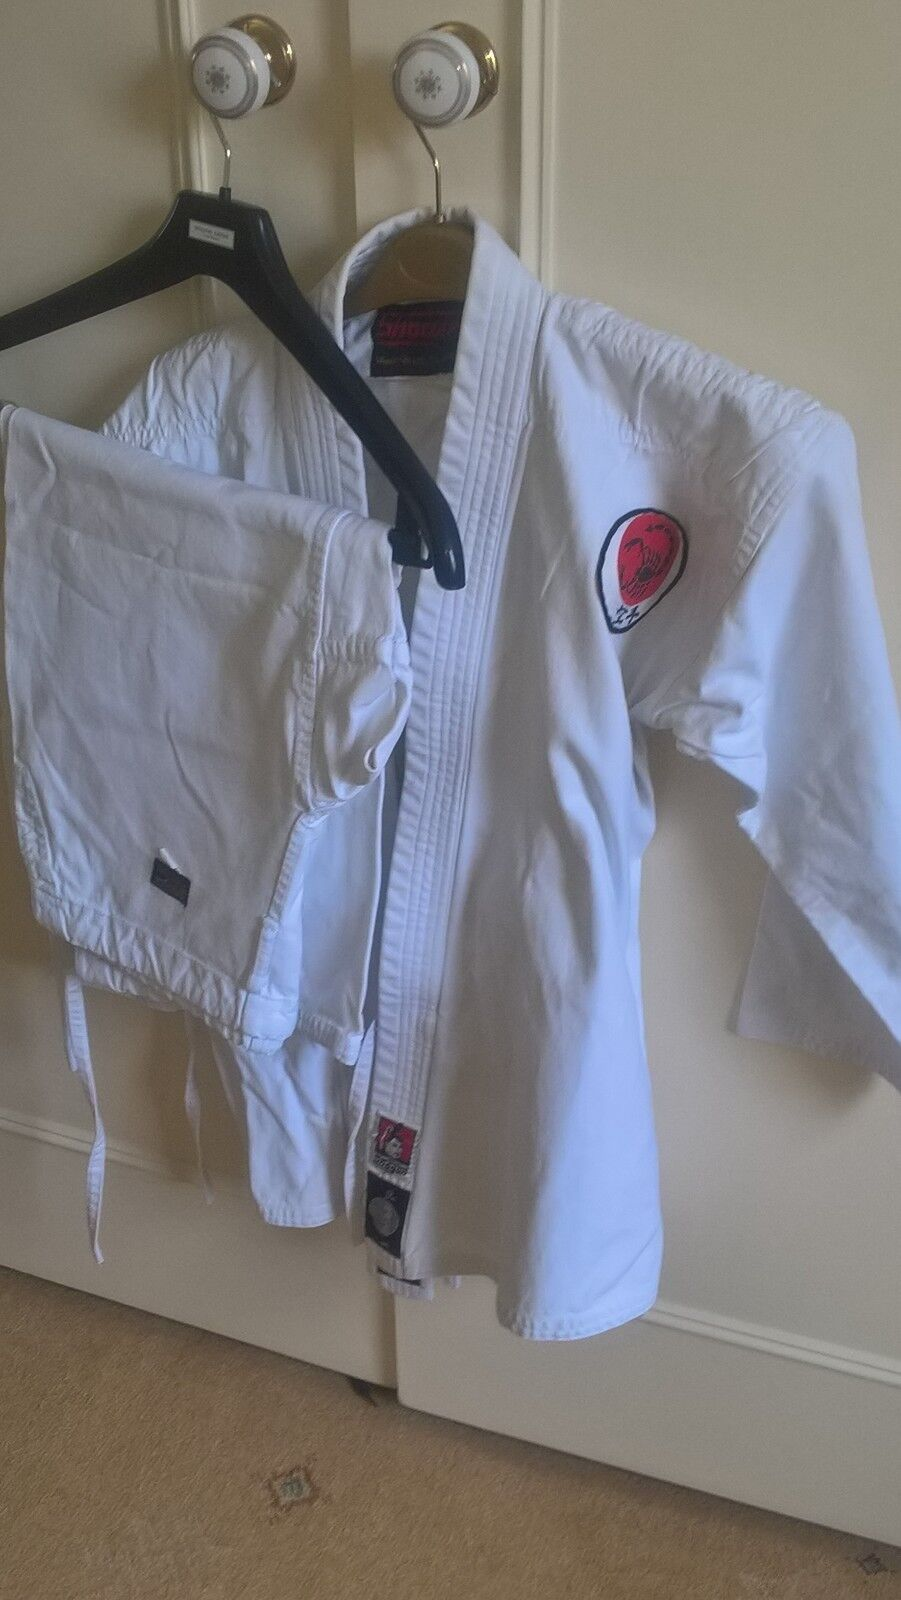 KARATE Kit for up to 16 years old ,very clean, ironed and good condition, Shogun